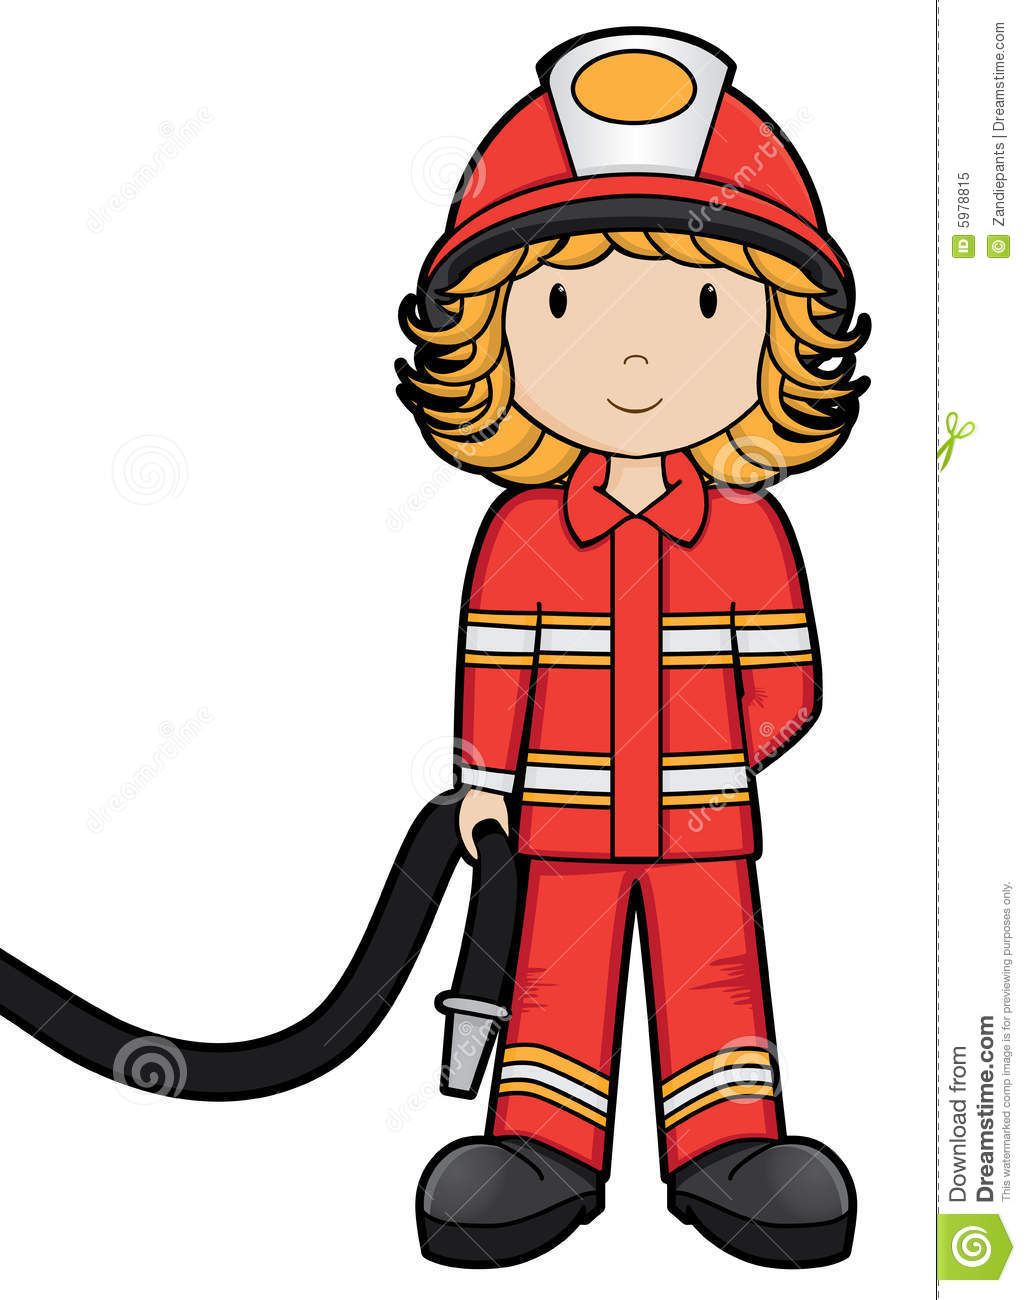 Water Fight Fireman Clipart - Clipart Kid